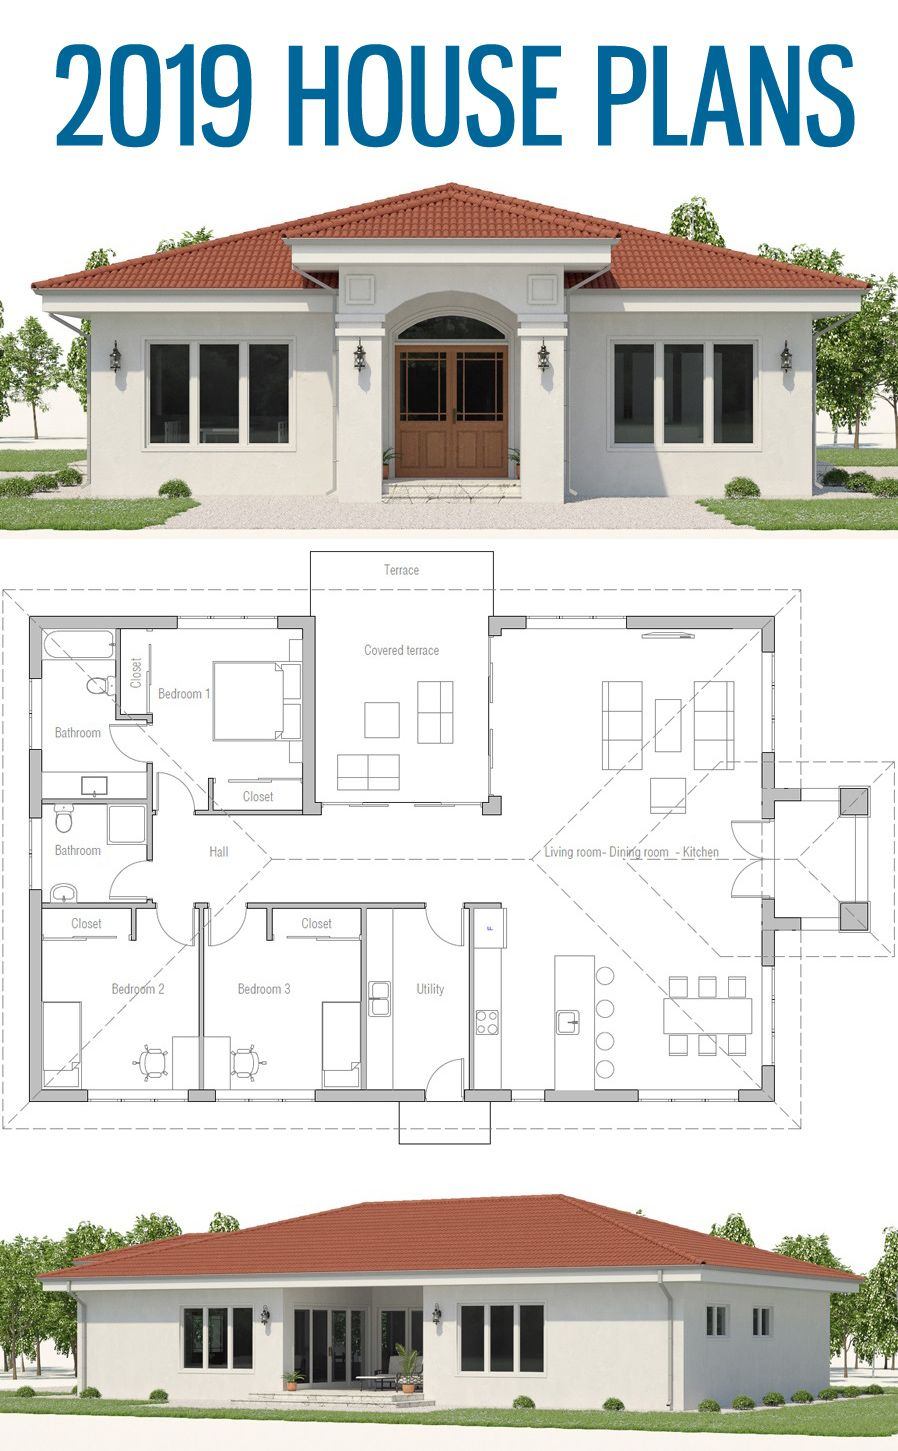 House Plans Single Strory Home Plan House Plans 2019 House Construction Plan House Plan Gallery My House Plans